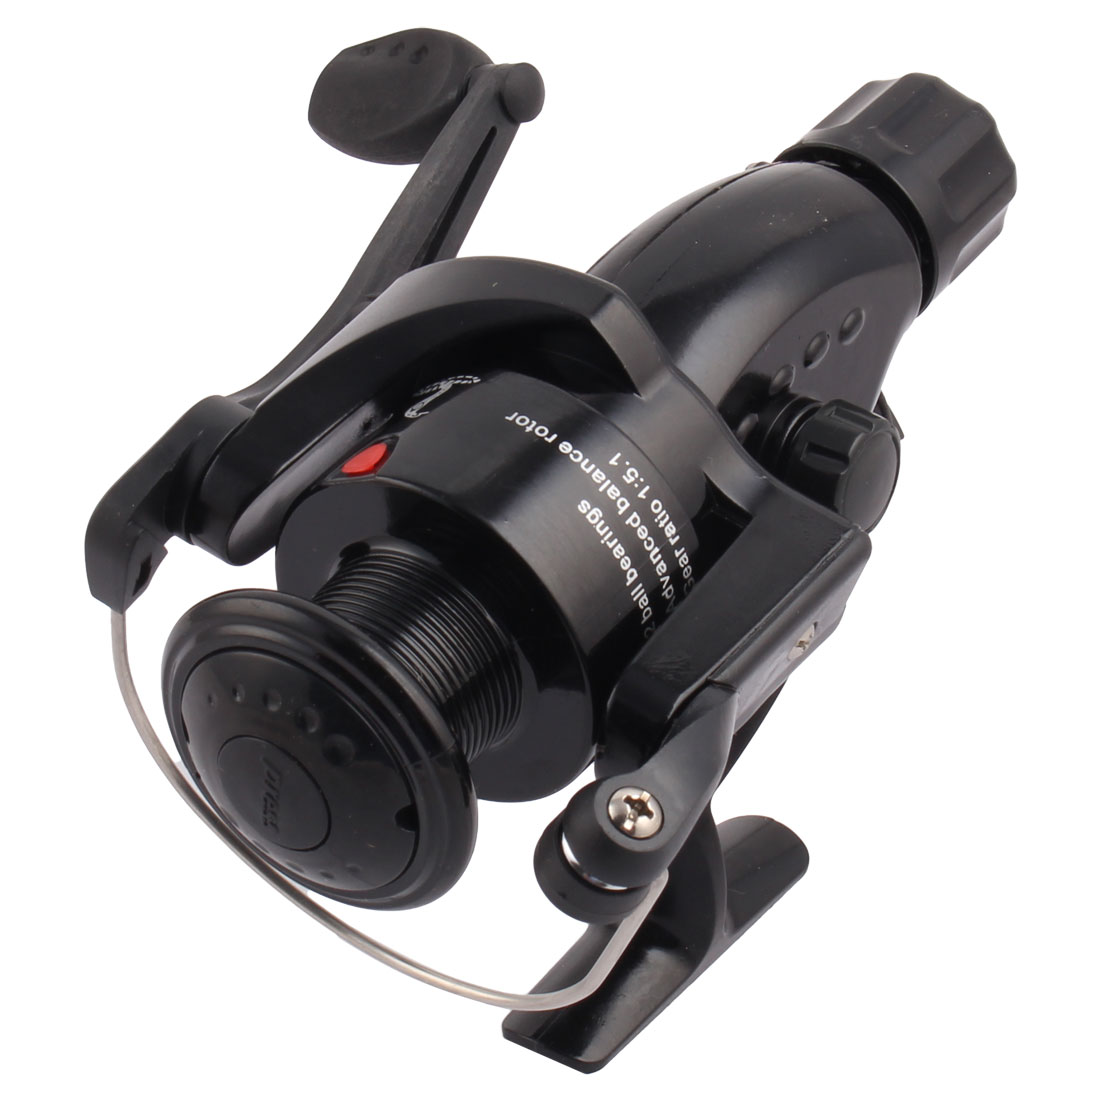 Fishing Tackle 2 Ball Bearings Line Spool Spinning Reel Black